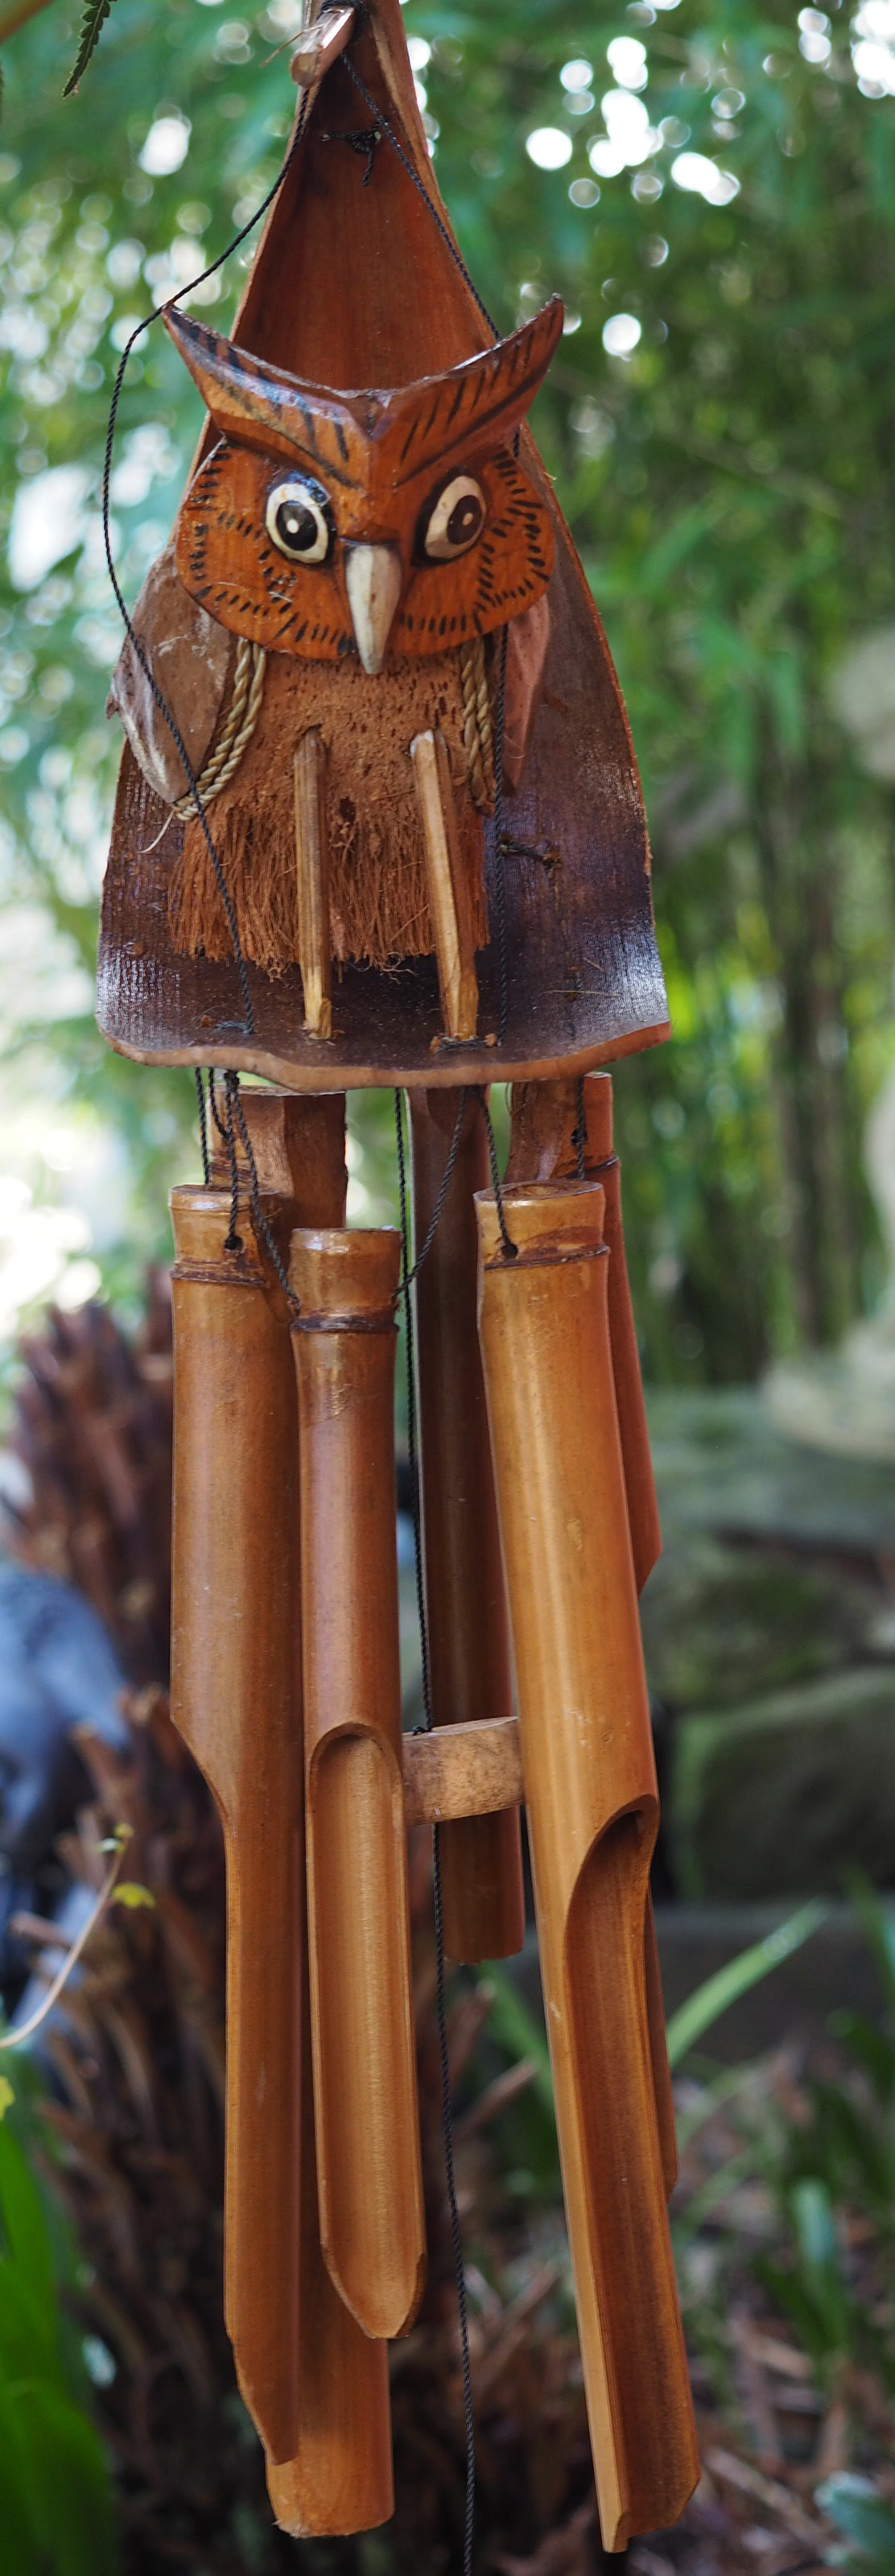 Large-Handmade-Fair-Trade-Coconut-And-Bamboo-Wind-Chime-Mobiles-6-Designs miniatuur 20